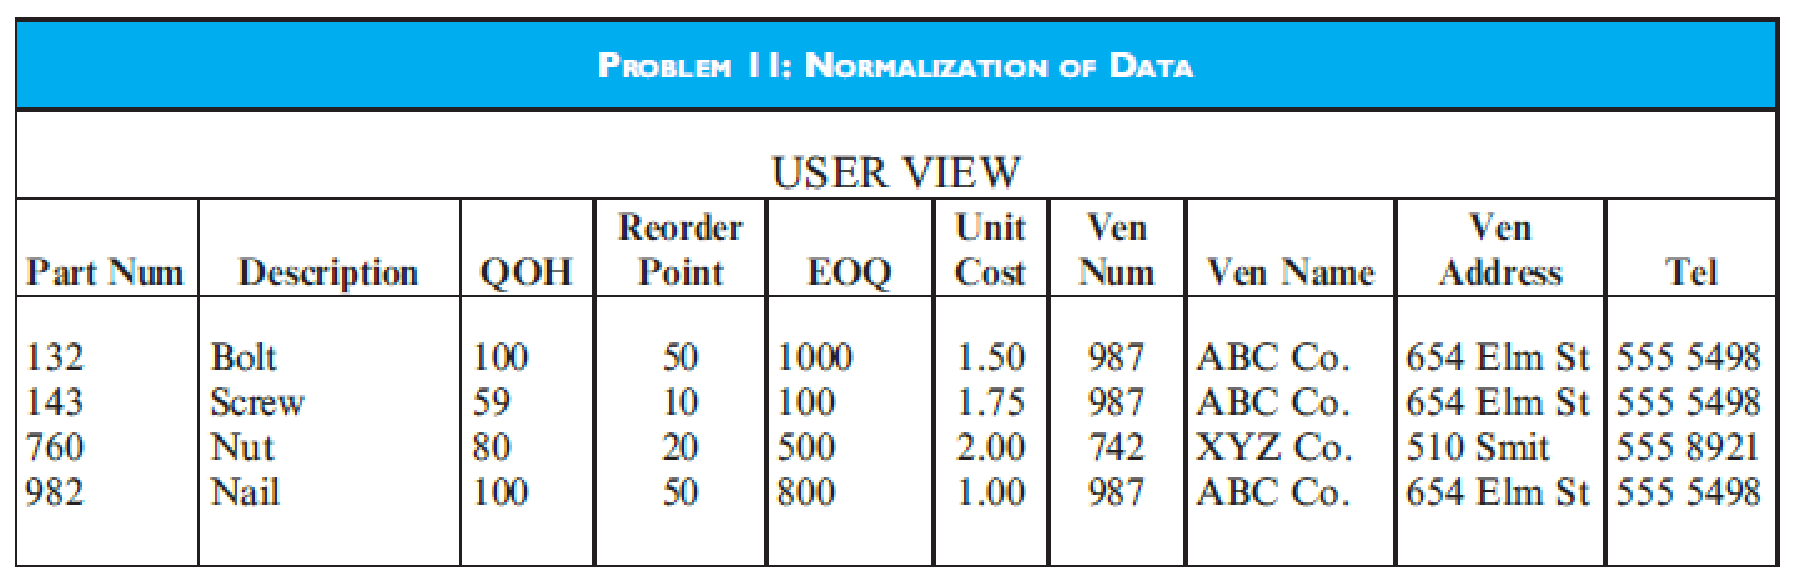 Chapter 9, Problem 11P, Prepare the base tables, in third normal form, needed to produce the user view in the table for